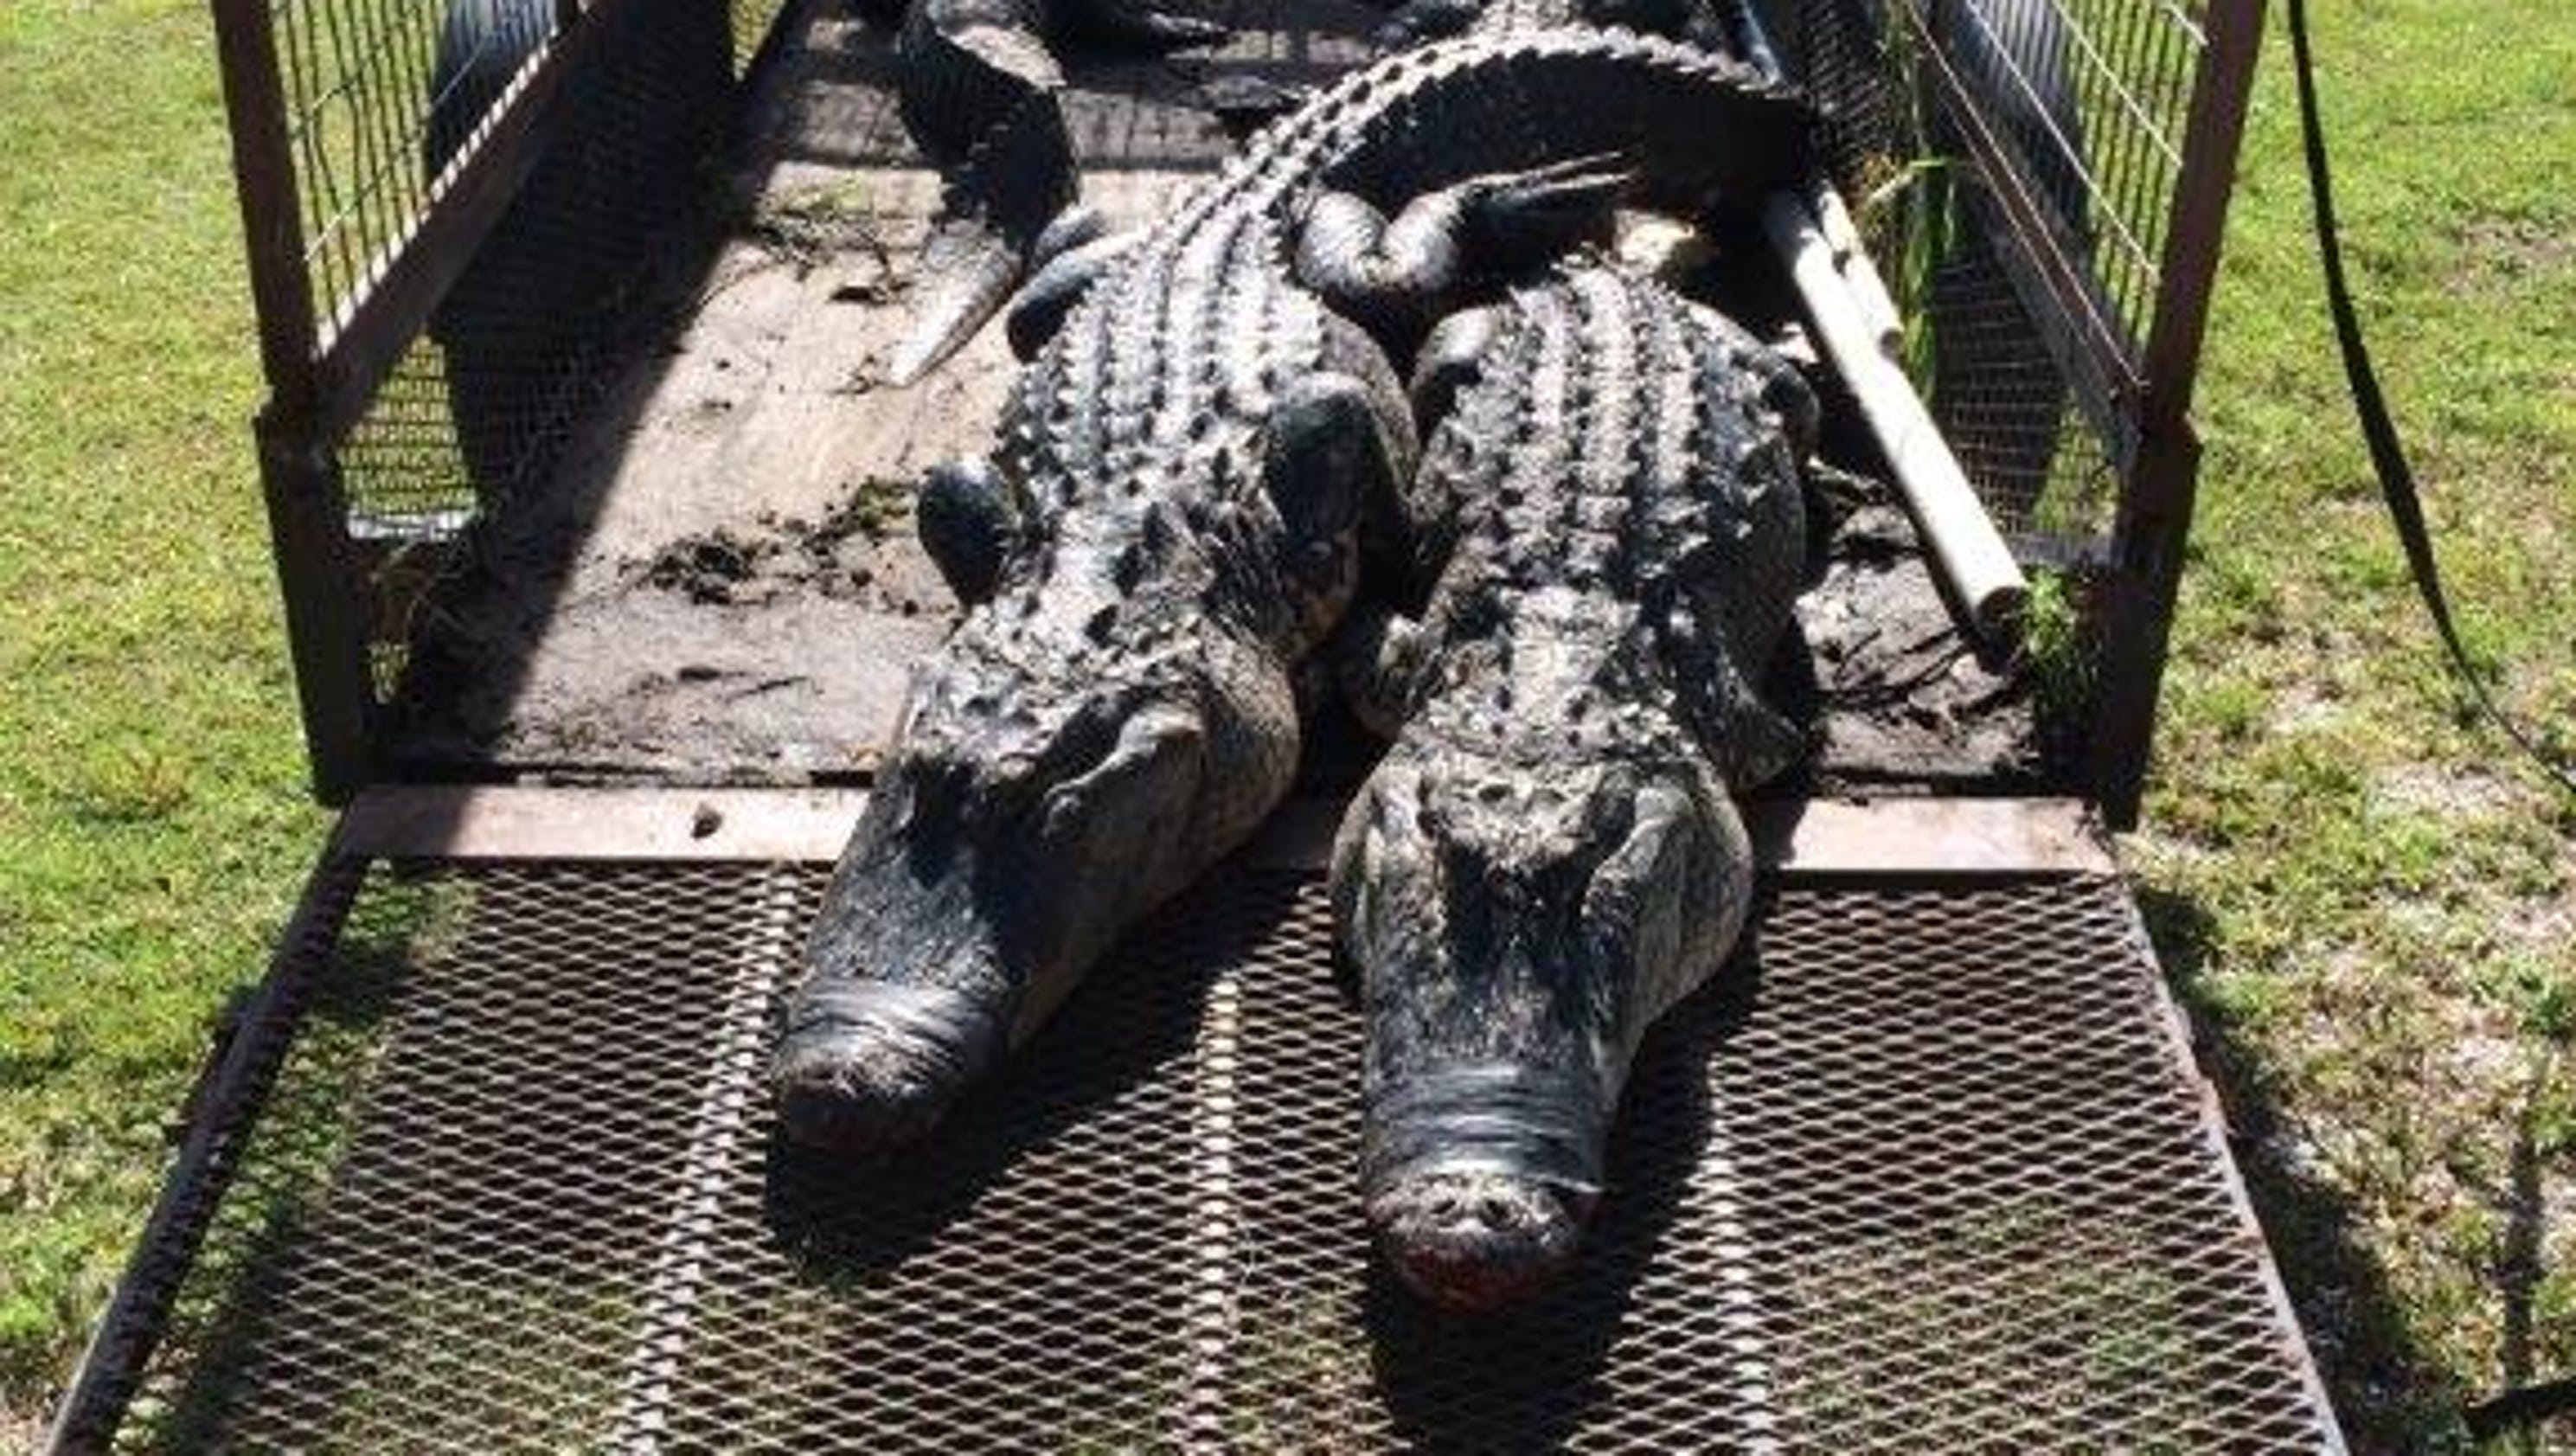 9 arrested in alligator racketeering ring